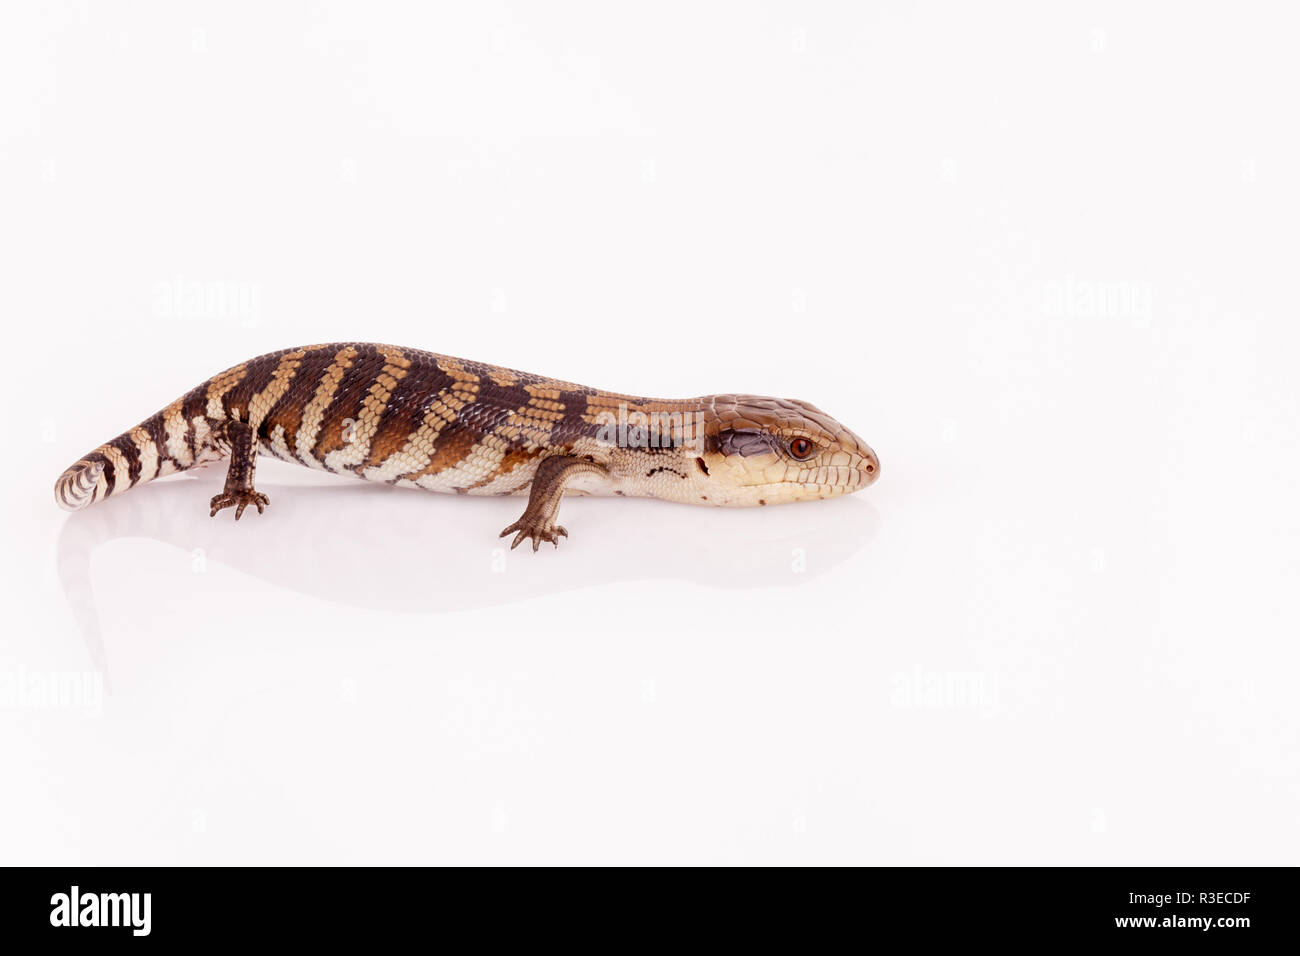 Australian Baby Eastern Blue Tongue Lizard closeup walking on reflective white perspex base isolated against white background in landscape format - Stock Image